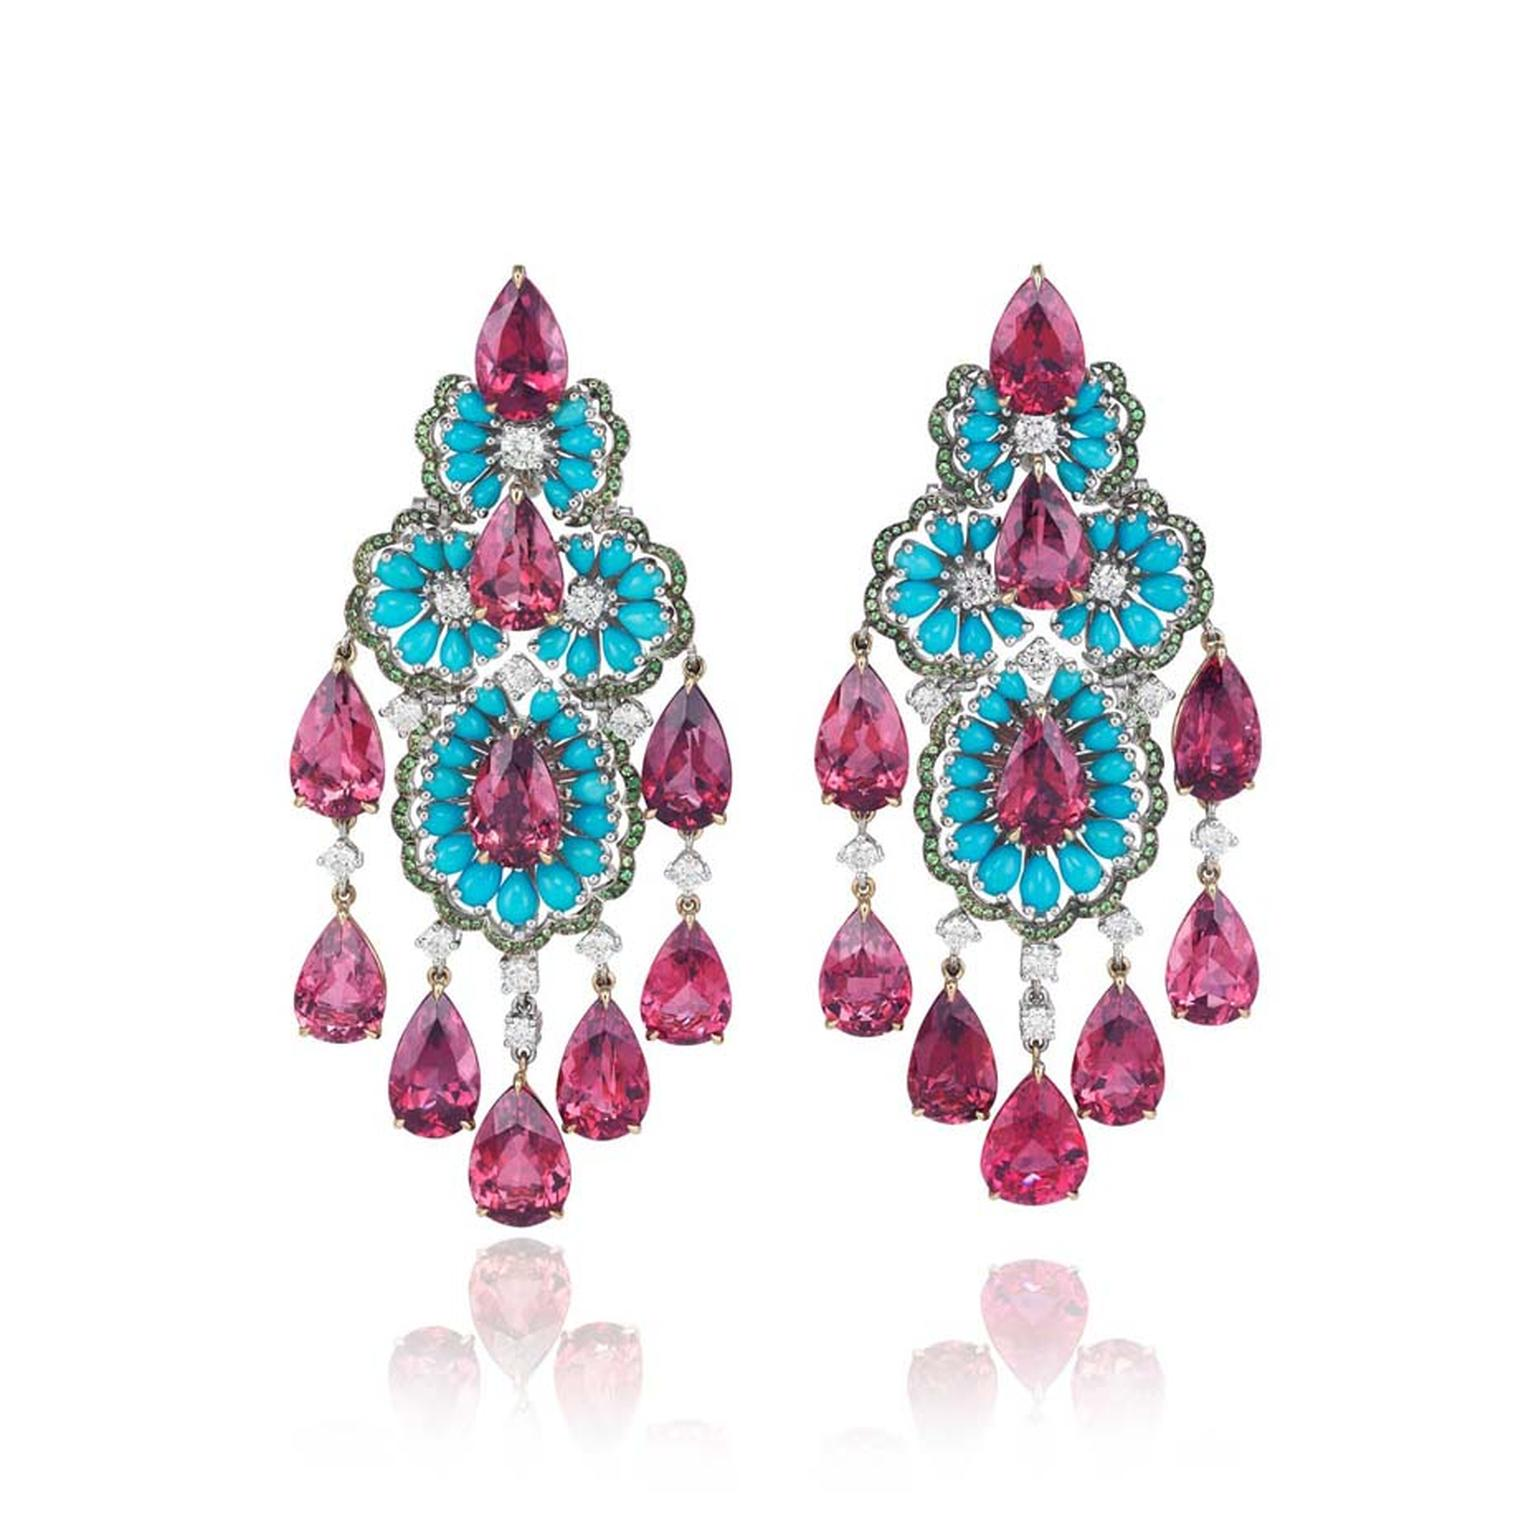 Chopard's Red Carpet collection earrings featuring rubellite tourmalines, turquoises, white diamonds and tsavorites set in 18ct white gold and 18ct rose gold, worn by Spanish actress Bianca Suarez in Cannes.